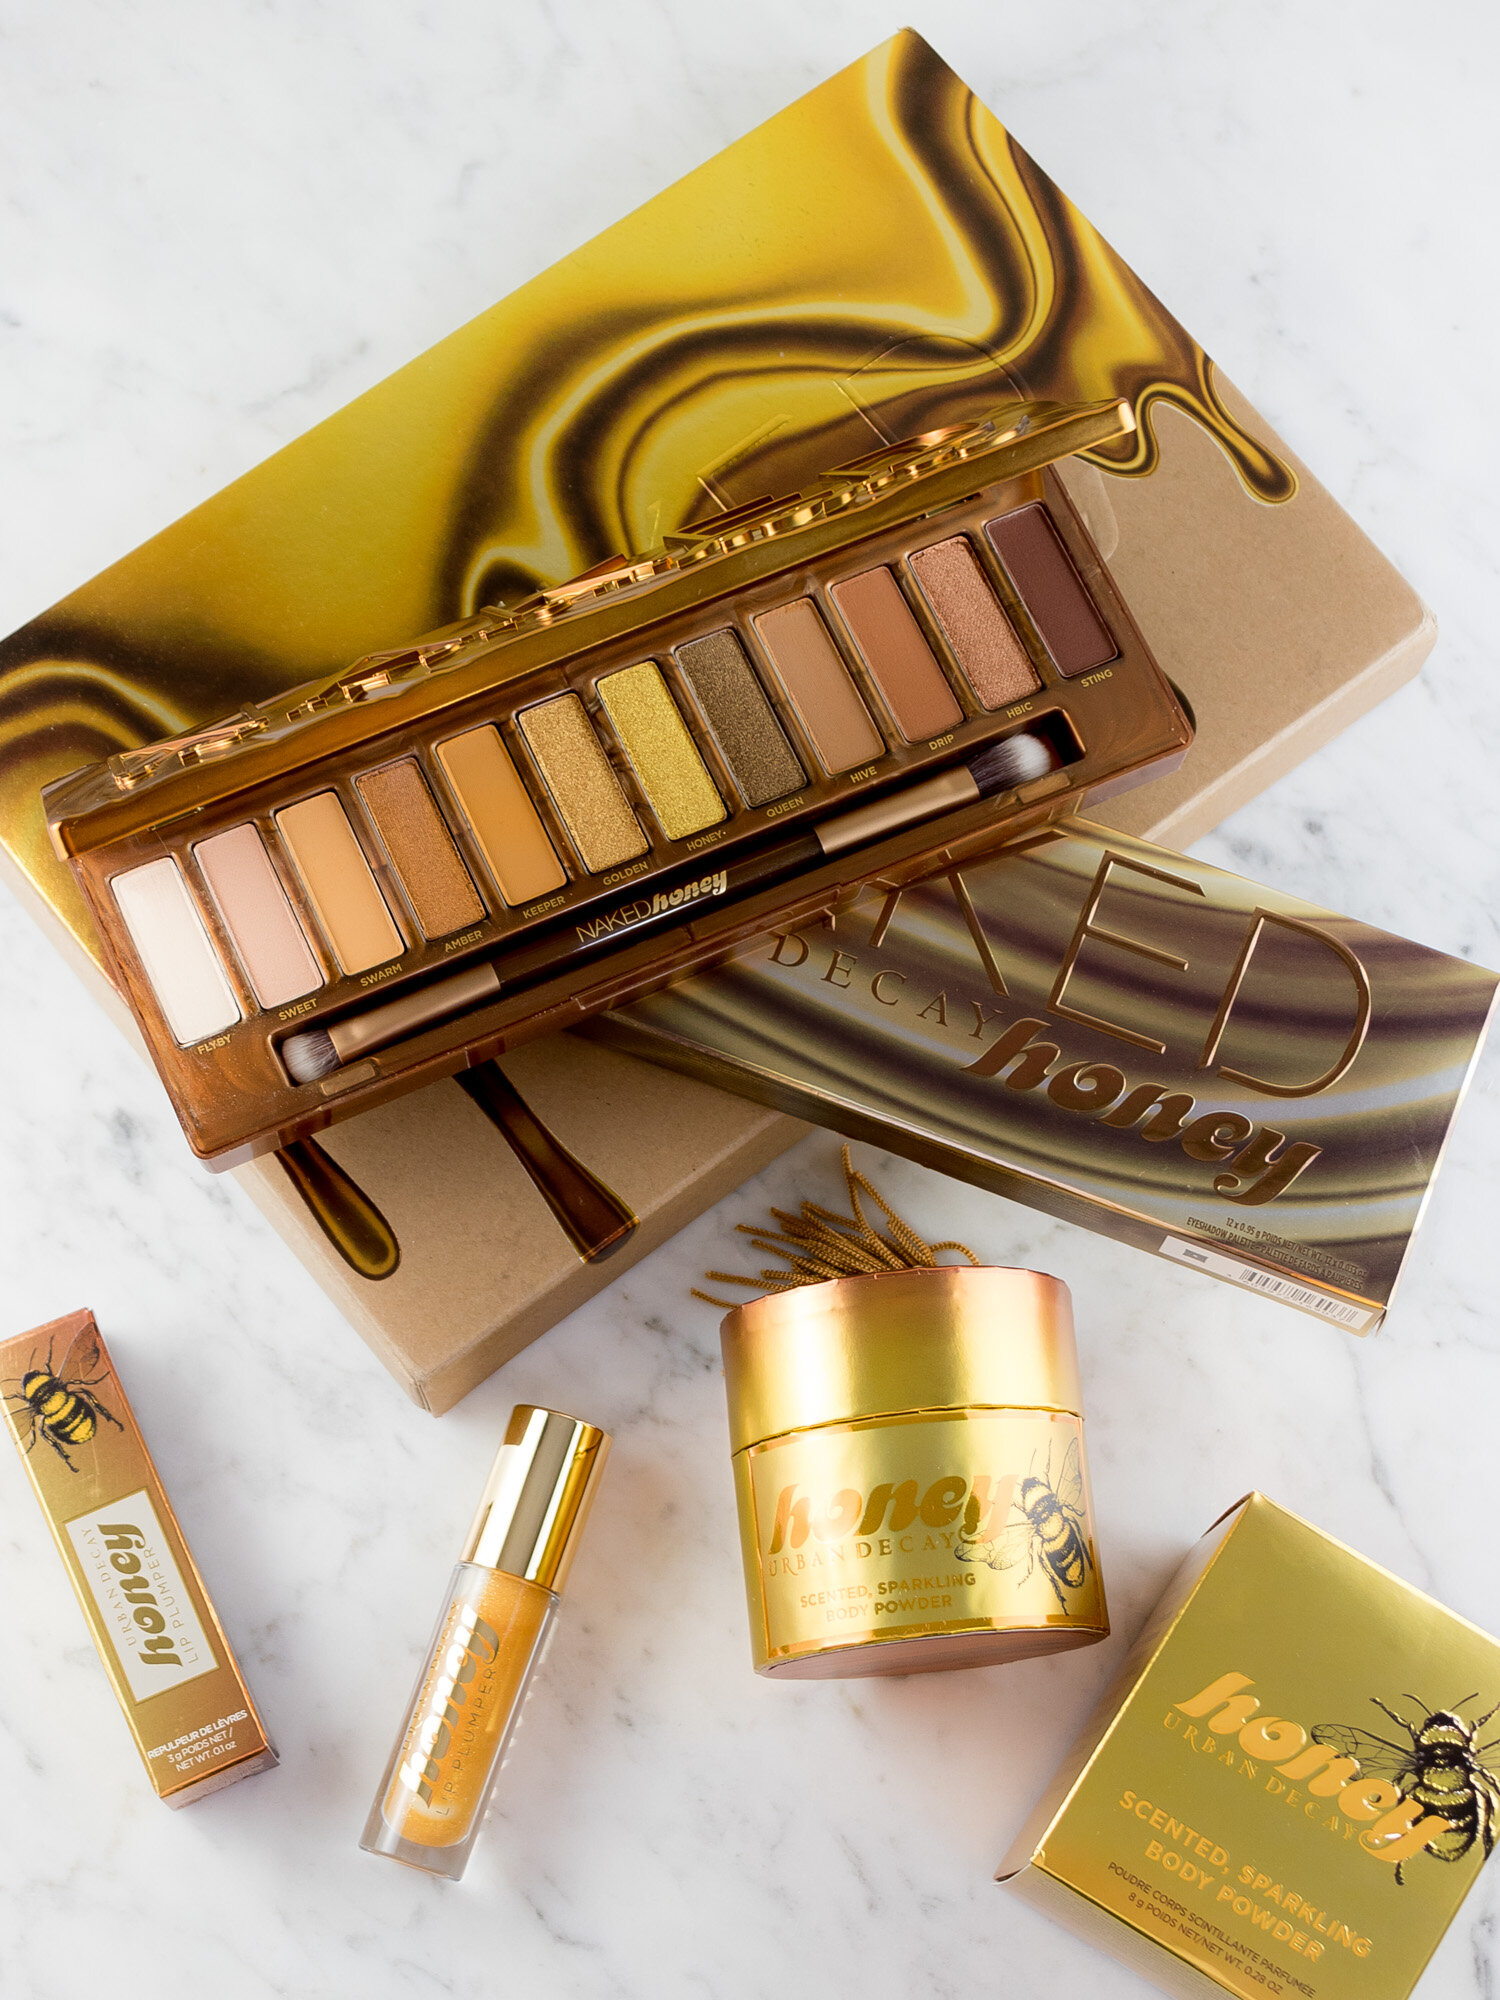 Urban Decay Sticky Sweet launches for Fall 2019